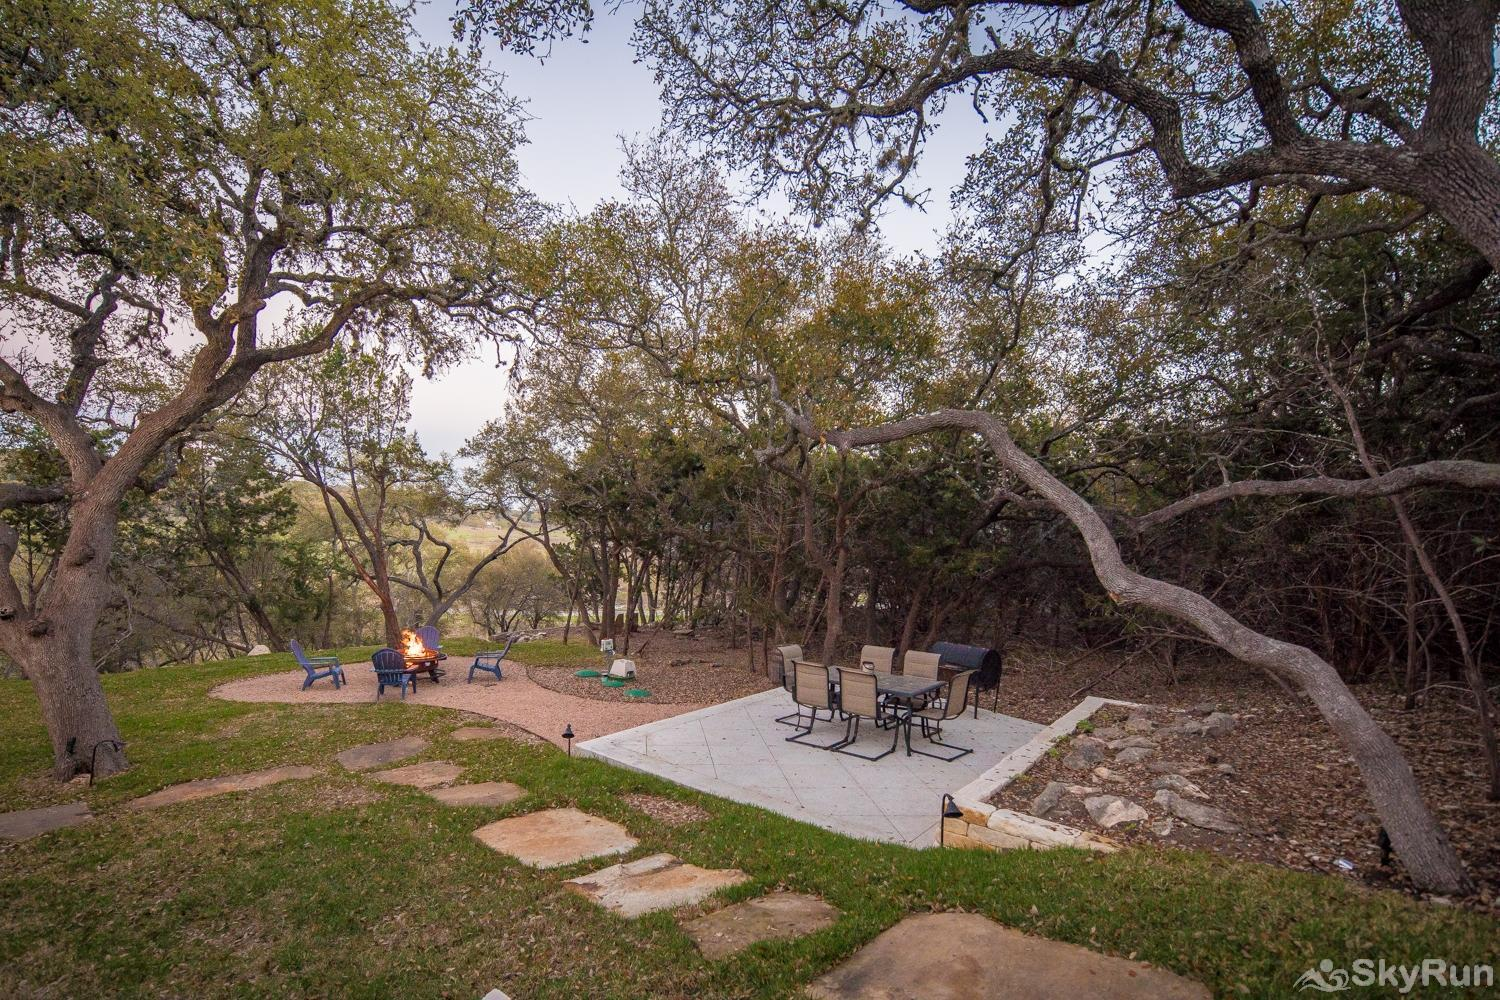 MAGNOLIA HAUS Picnic Area with Charcoal Barbecue Grill